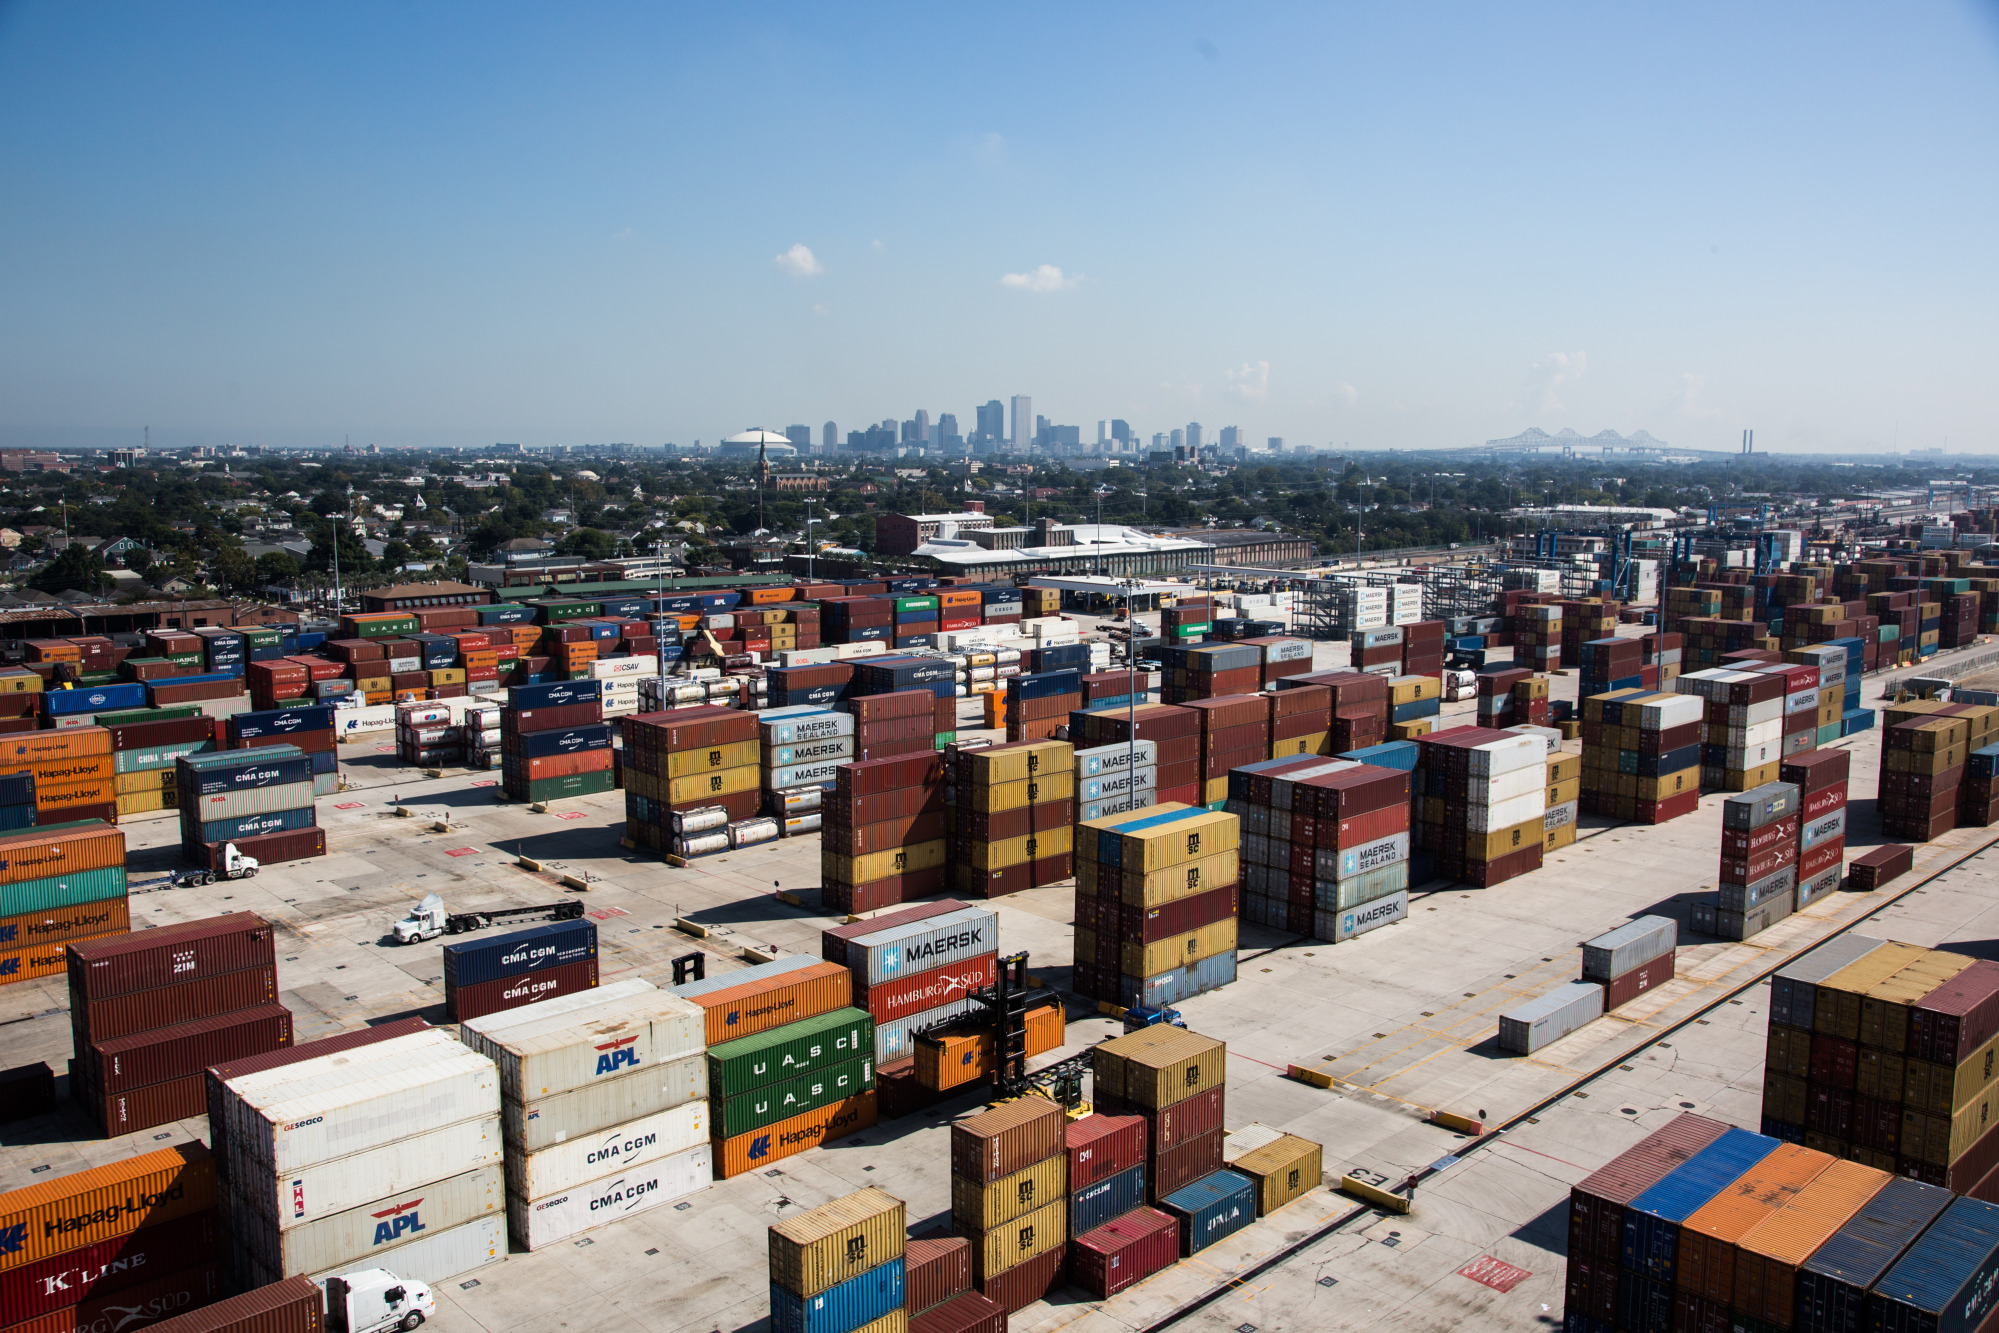 Shipping containers sit stacked at the Port of New Orleans in New Orleans, Louisiana, U.S.